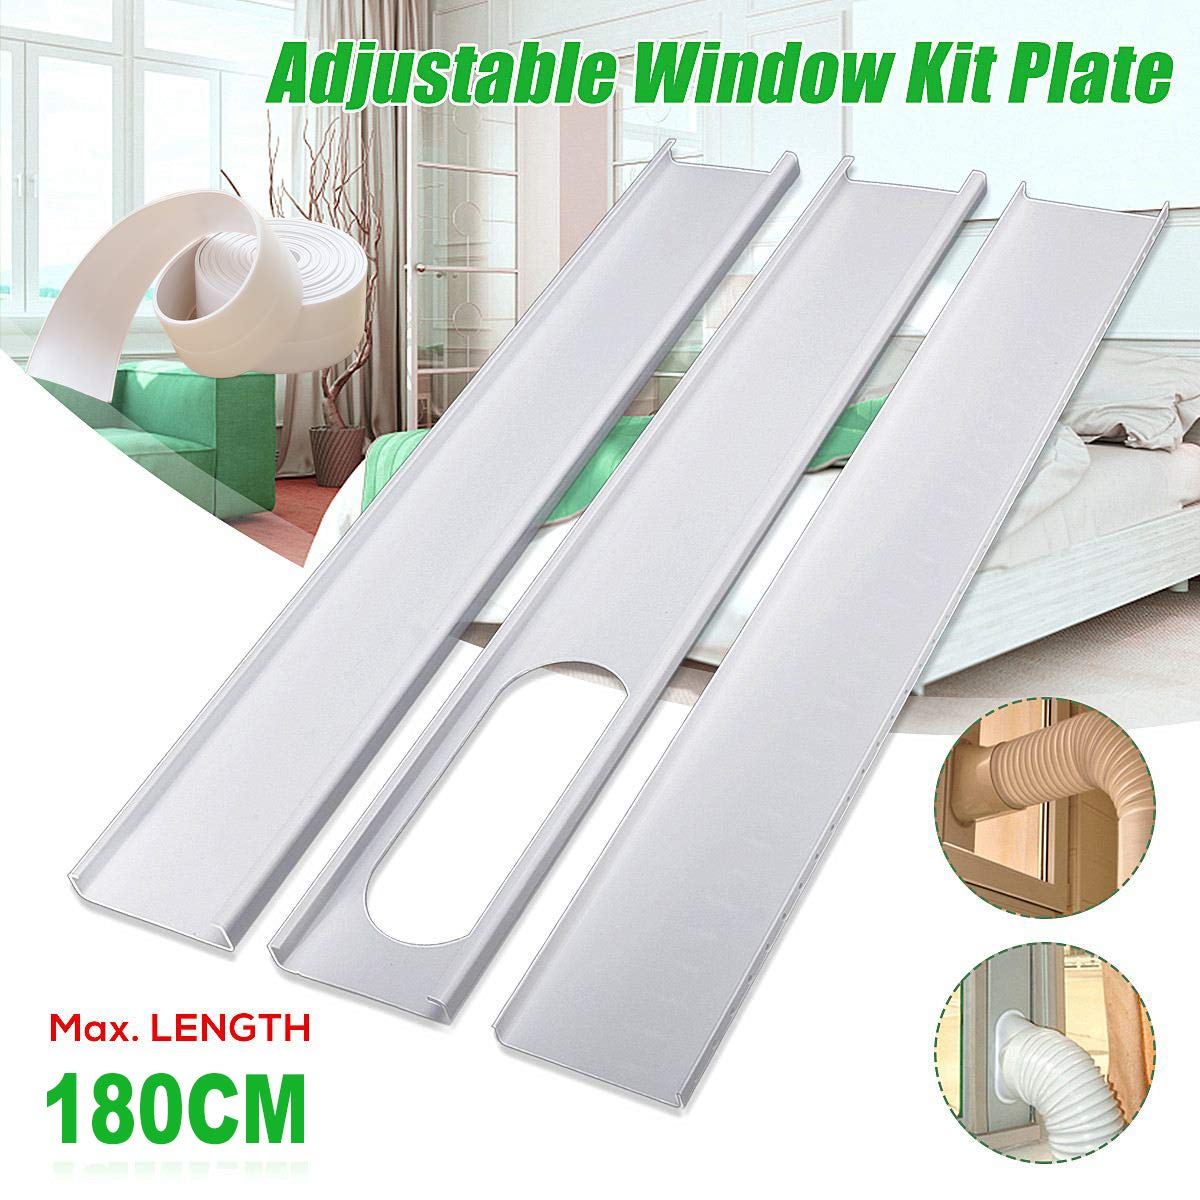 Aozzy Portable Air Conditioner Plastic Window Kit Vent Kit for Sliding Glass Window (13CM(5.0'') Hose, Adjustable Length between135cm-180cm Portable AC Replacement Window Slide Kit Plate Panel by Aozzy